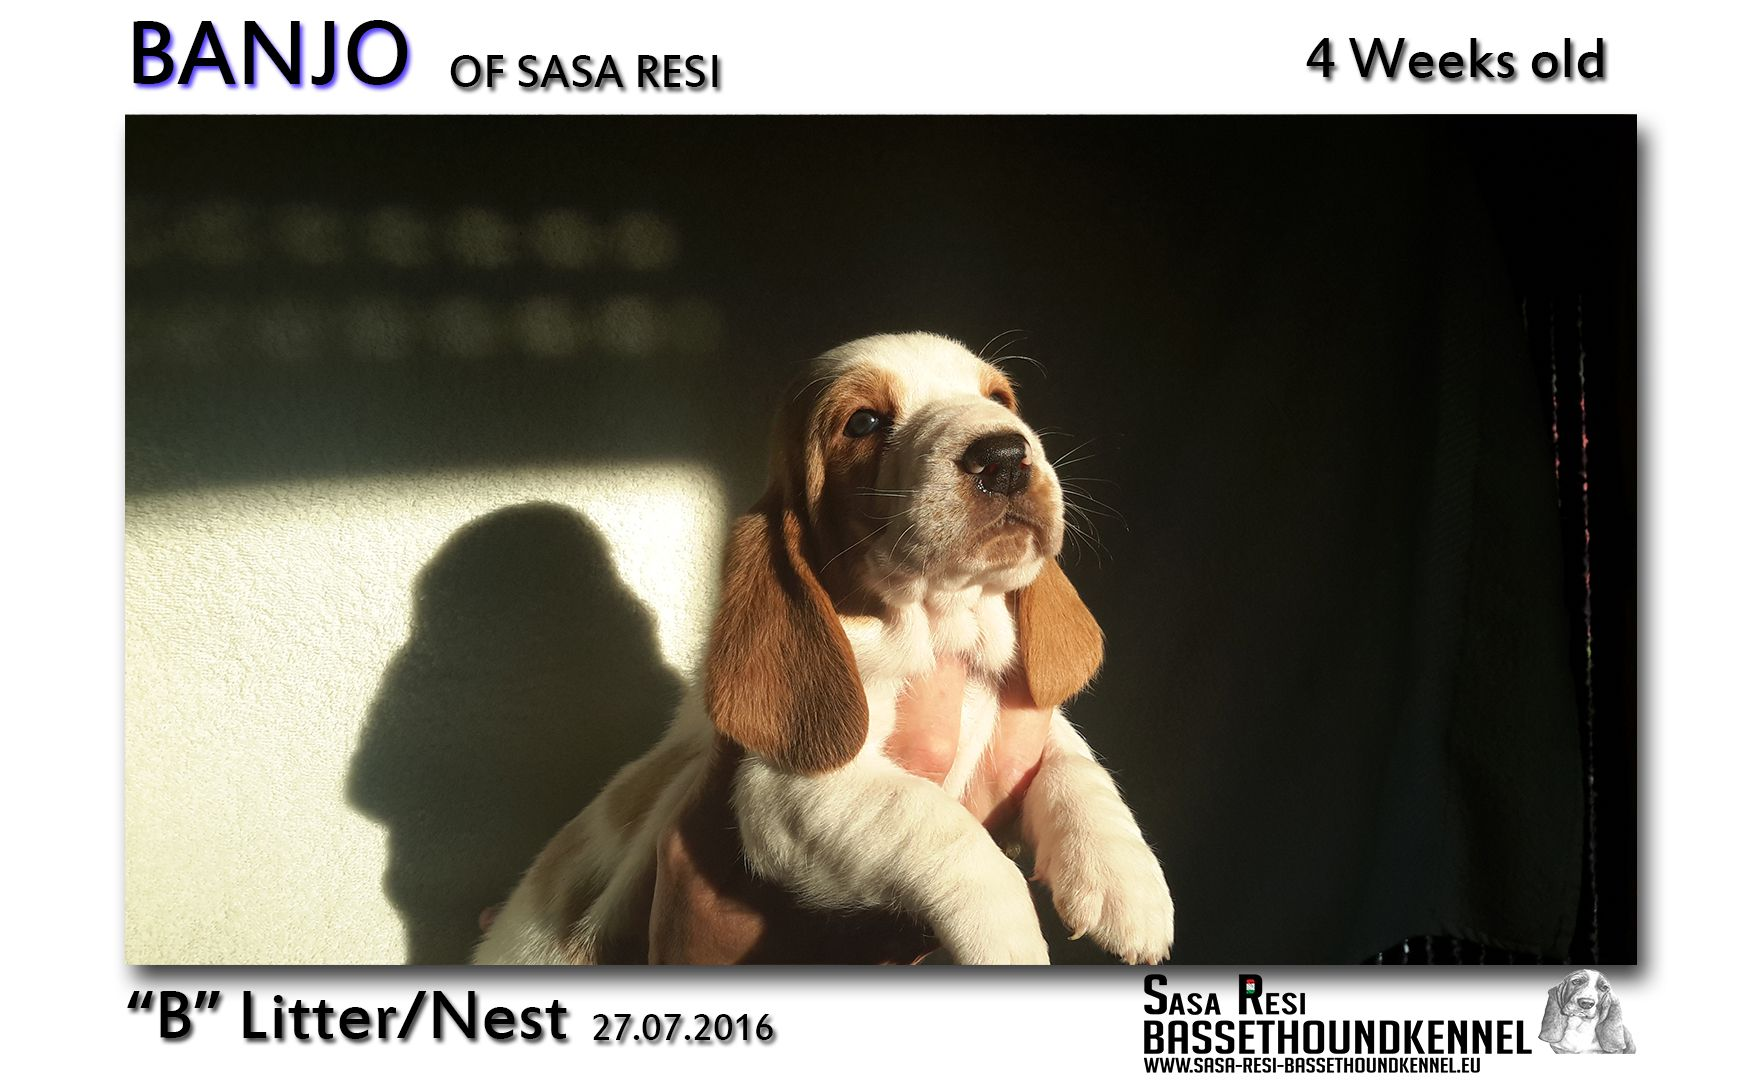 1 compressed 8 SaSa ReSi Bassethoundkennel